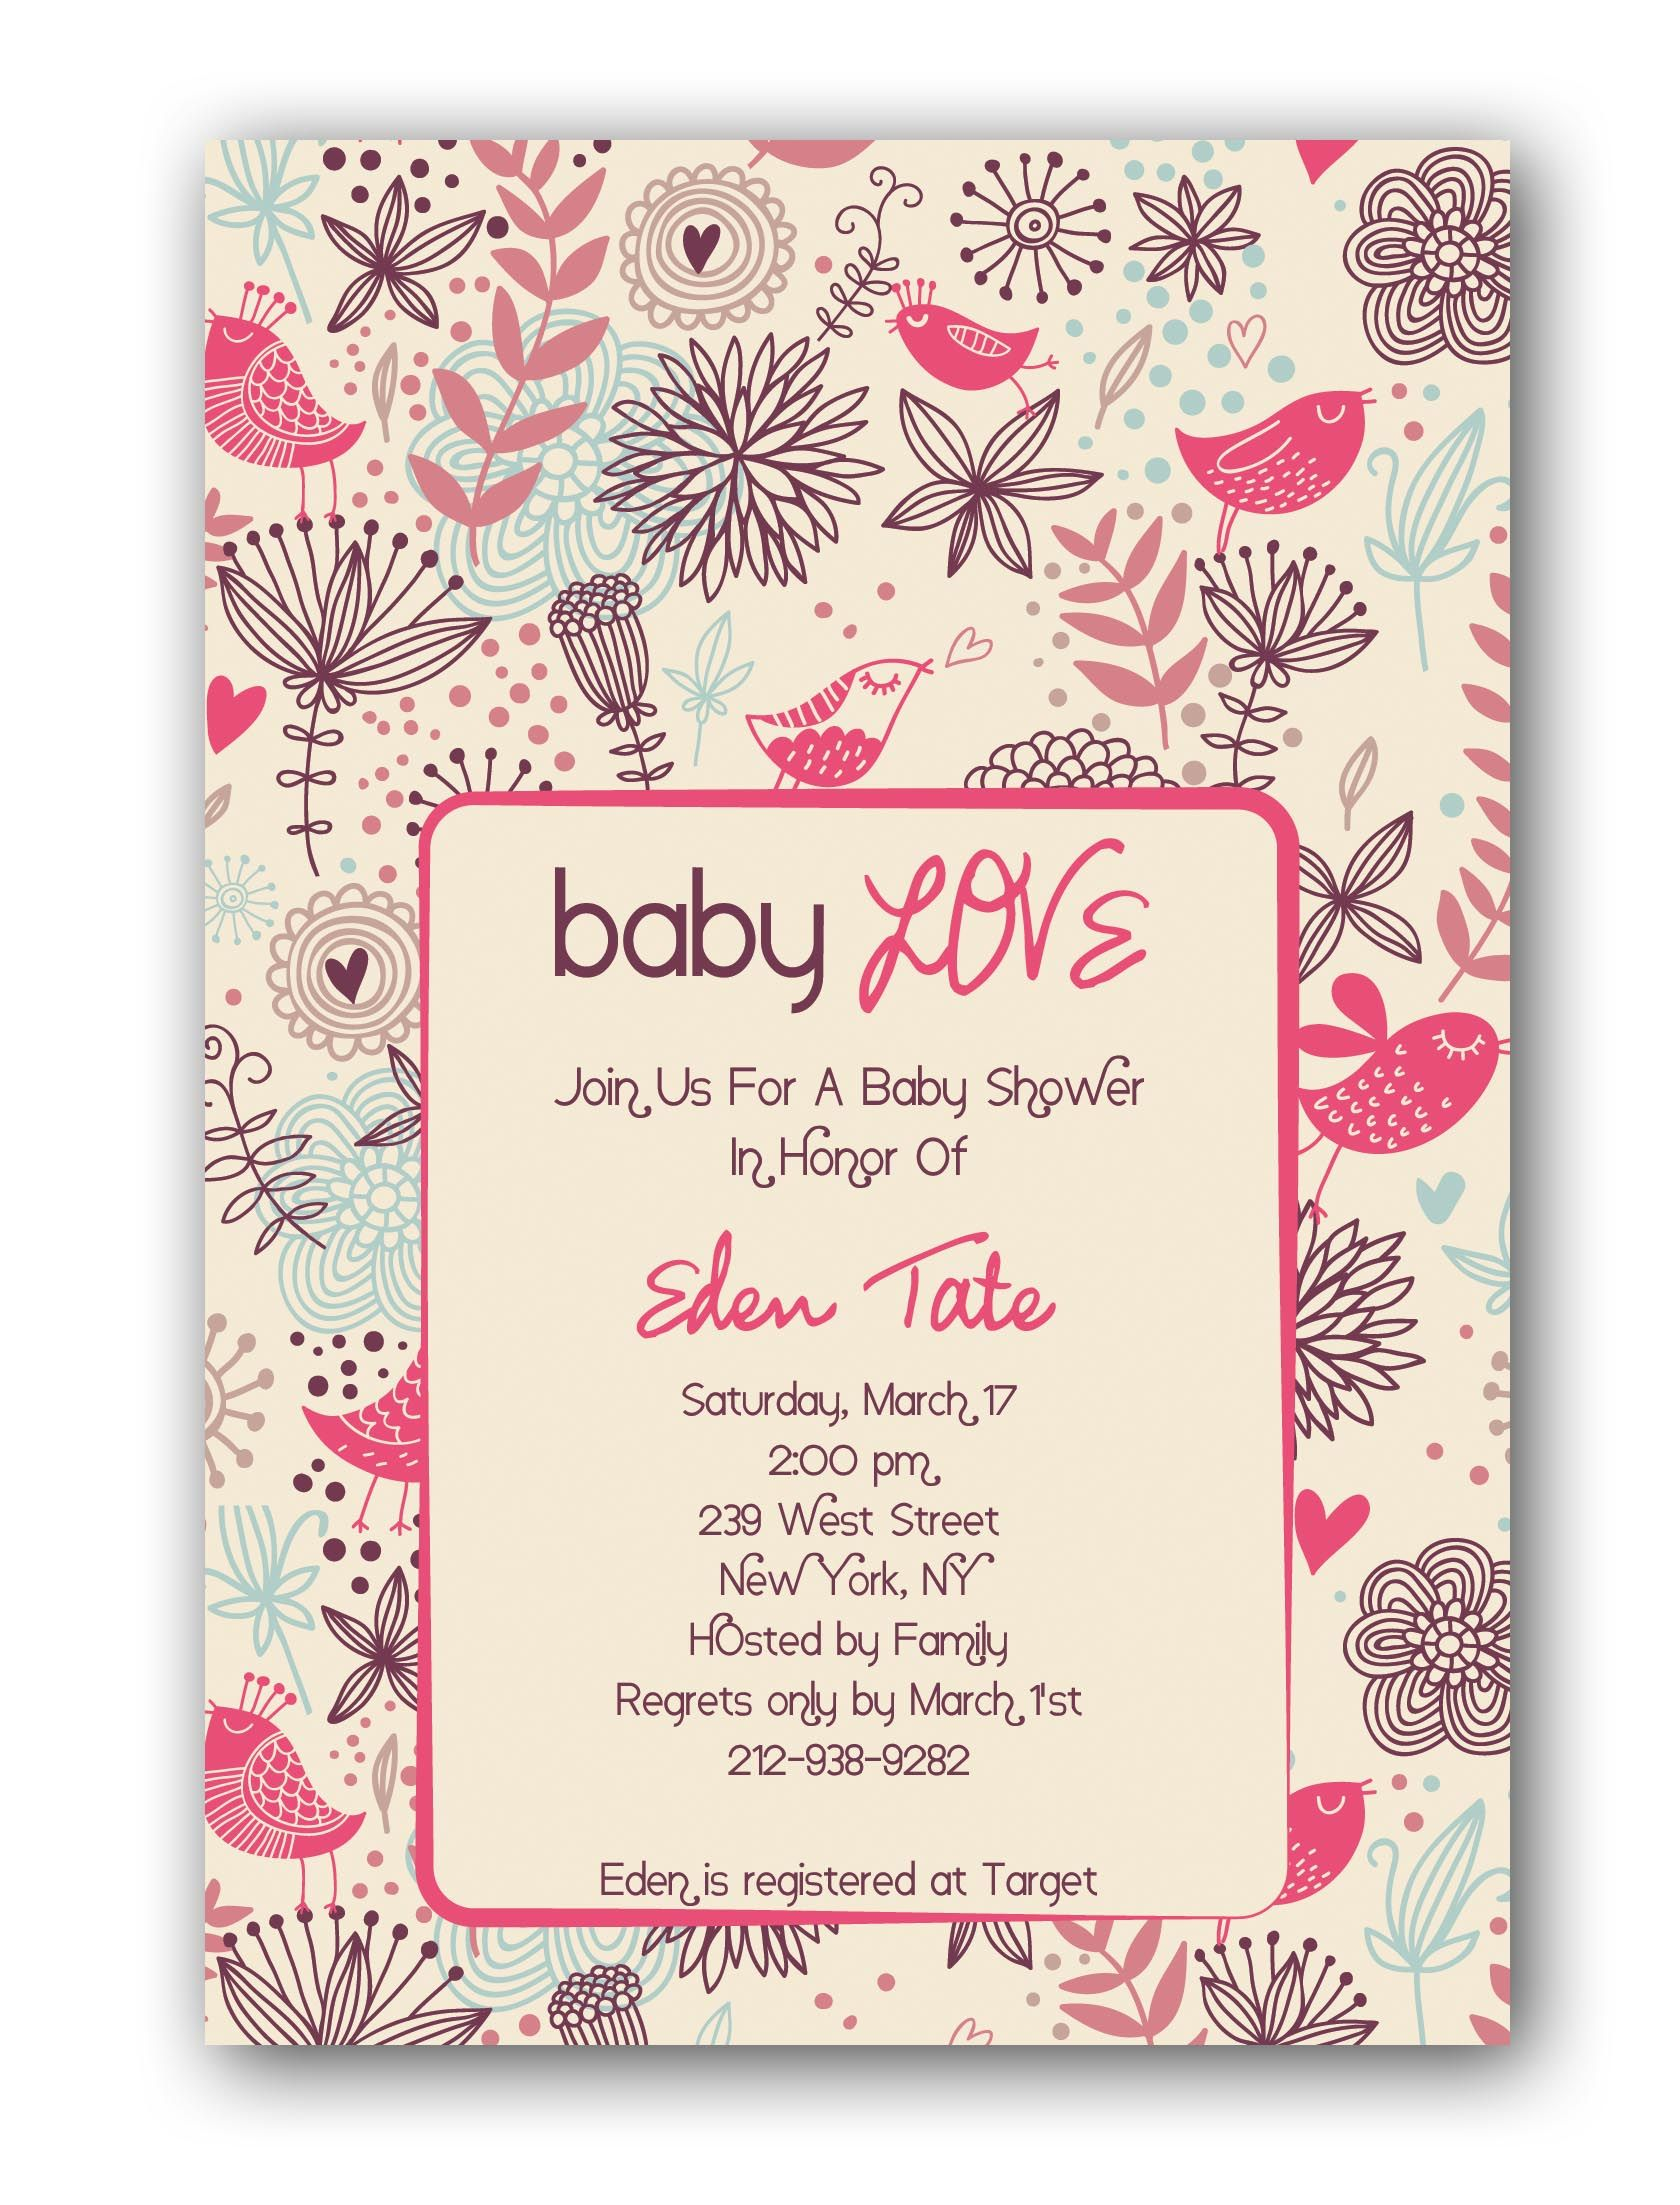 Baby Shower Invitations for girl item price 1 75 each sale